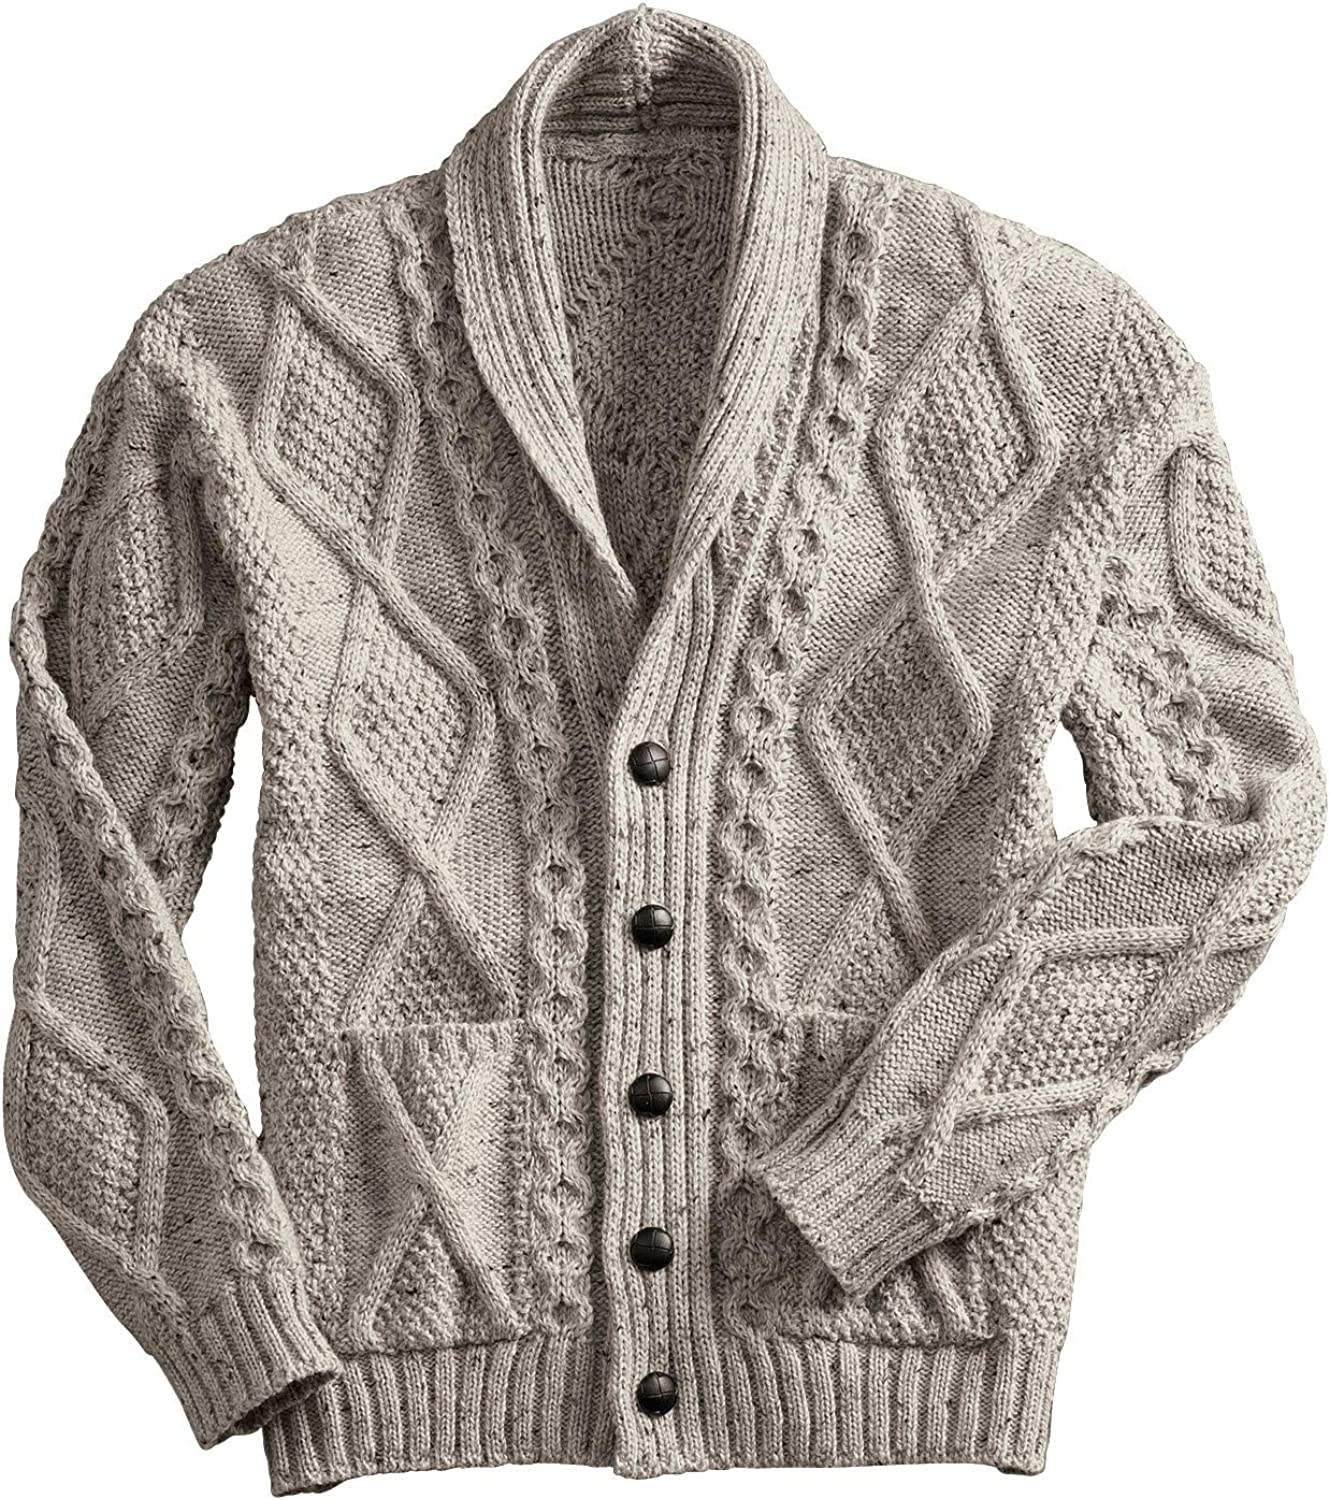 West End Knitwear Men's Aran Shawl Collar Cable Knit Cardigan Sweater Oatmeal Large